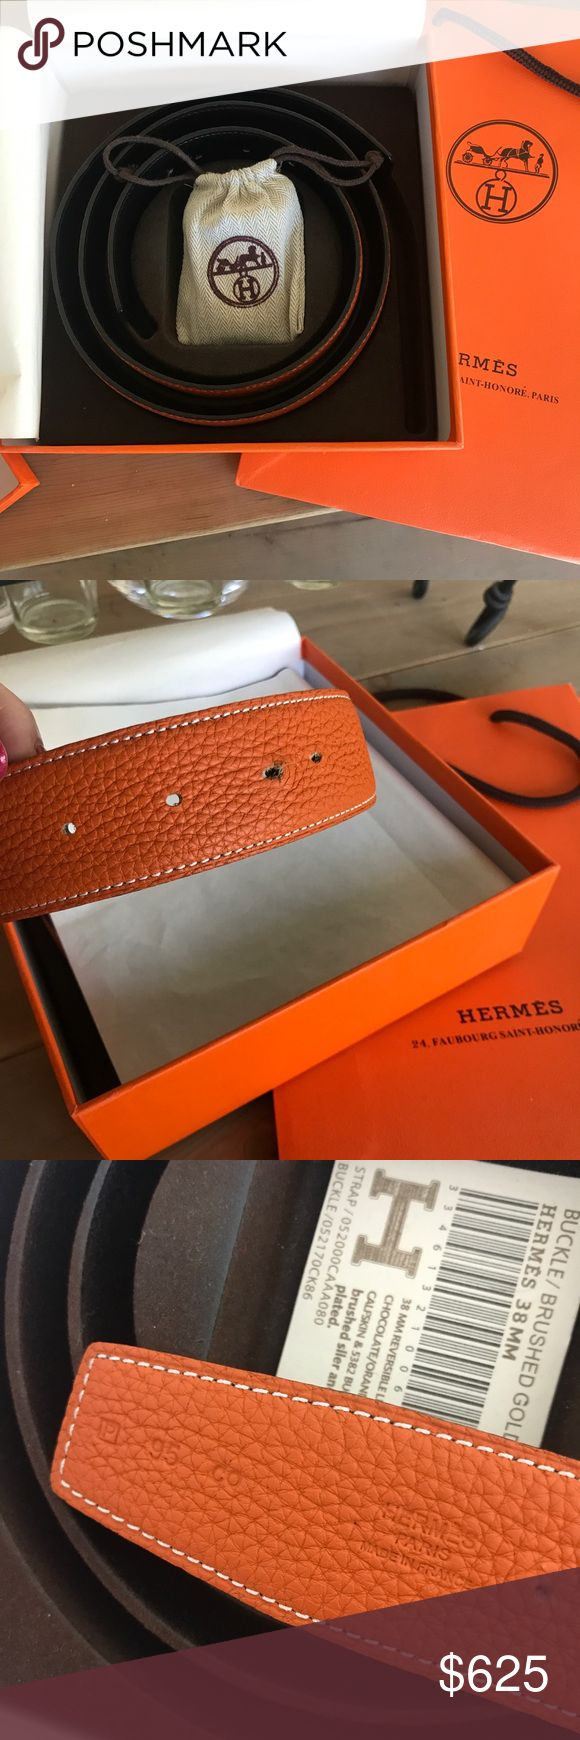 """Hermes Constance belt 95 chocolate/orange Size 95 Hermes Constance belt in chocolate/orange with brushes gold """"H"""" belt buckle . Item is like new with just a little bit of wear in belt hole which is pictured. Only been worn a handful of times Hermes Accessories Belts"""